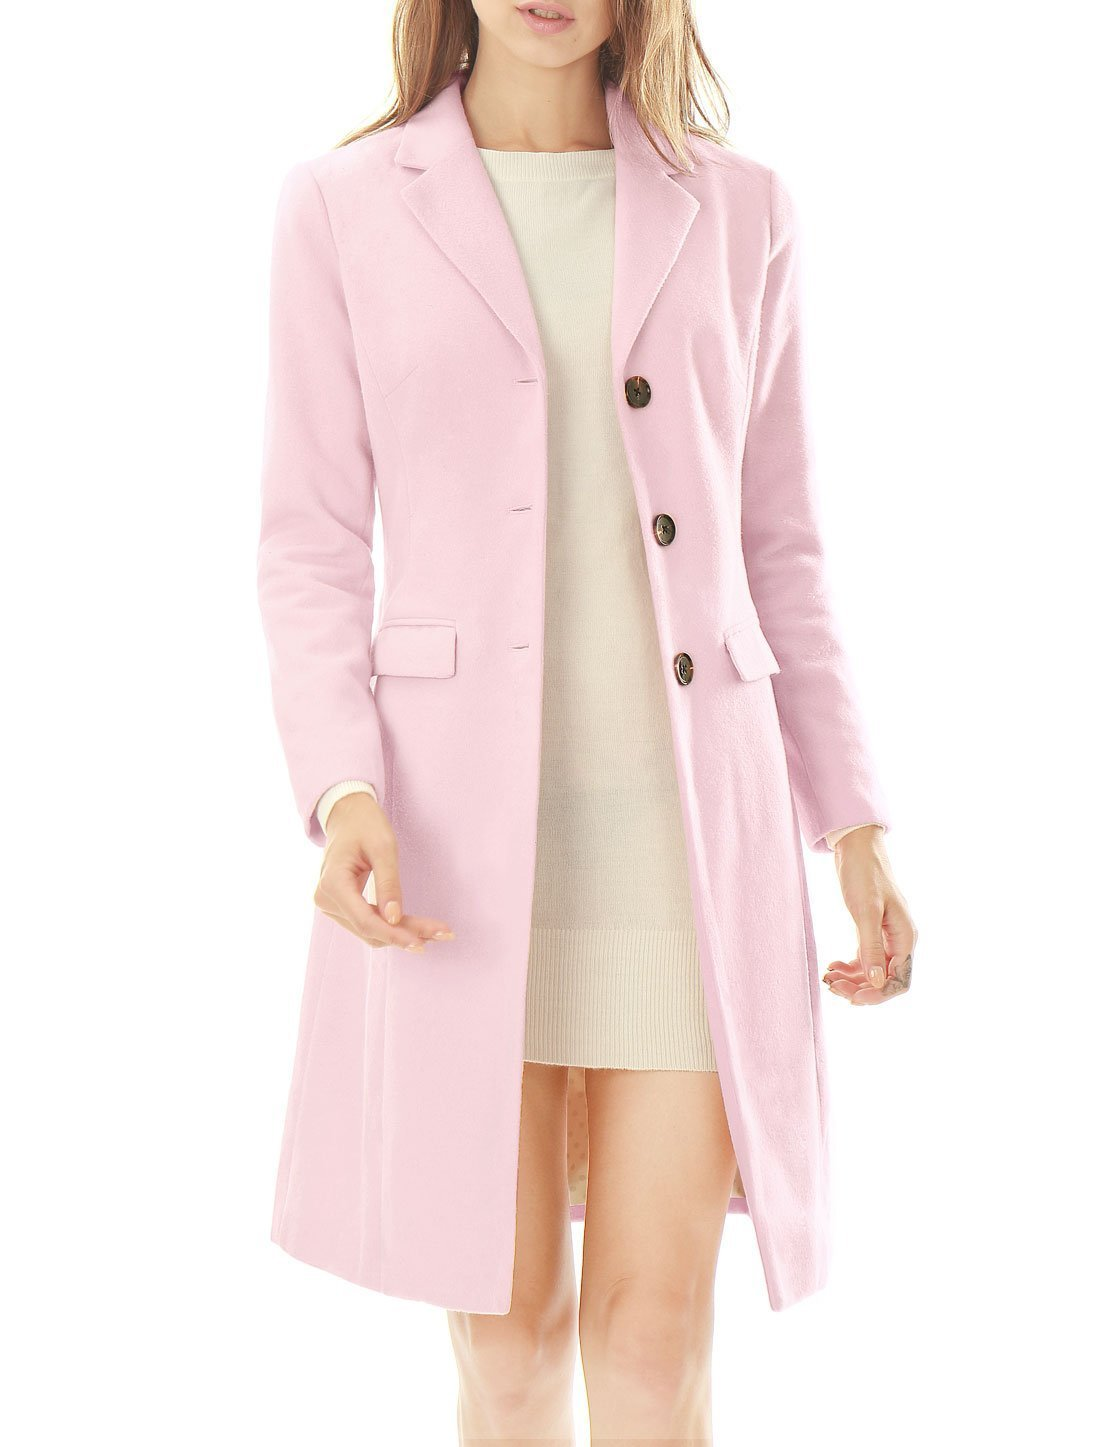 Allegra K Women's Notched Lapel Button Closure Long Coat M Light Pink